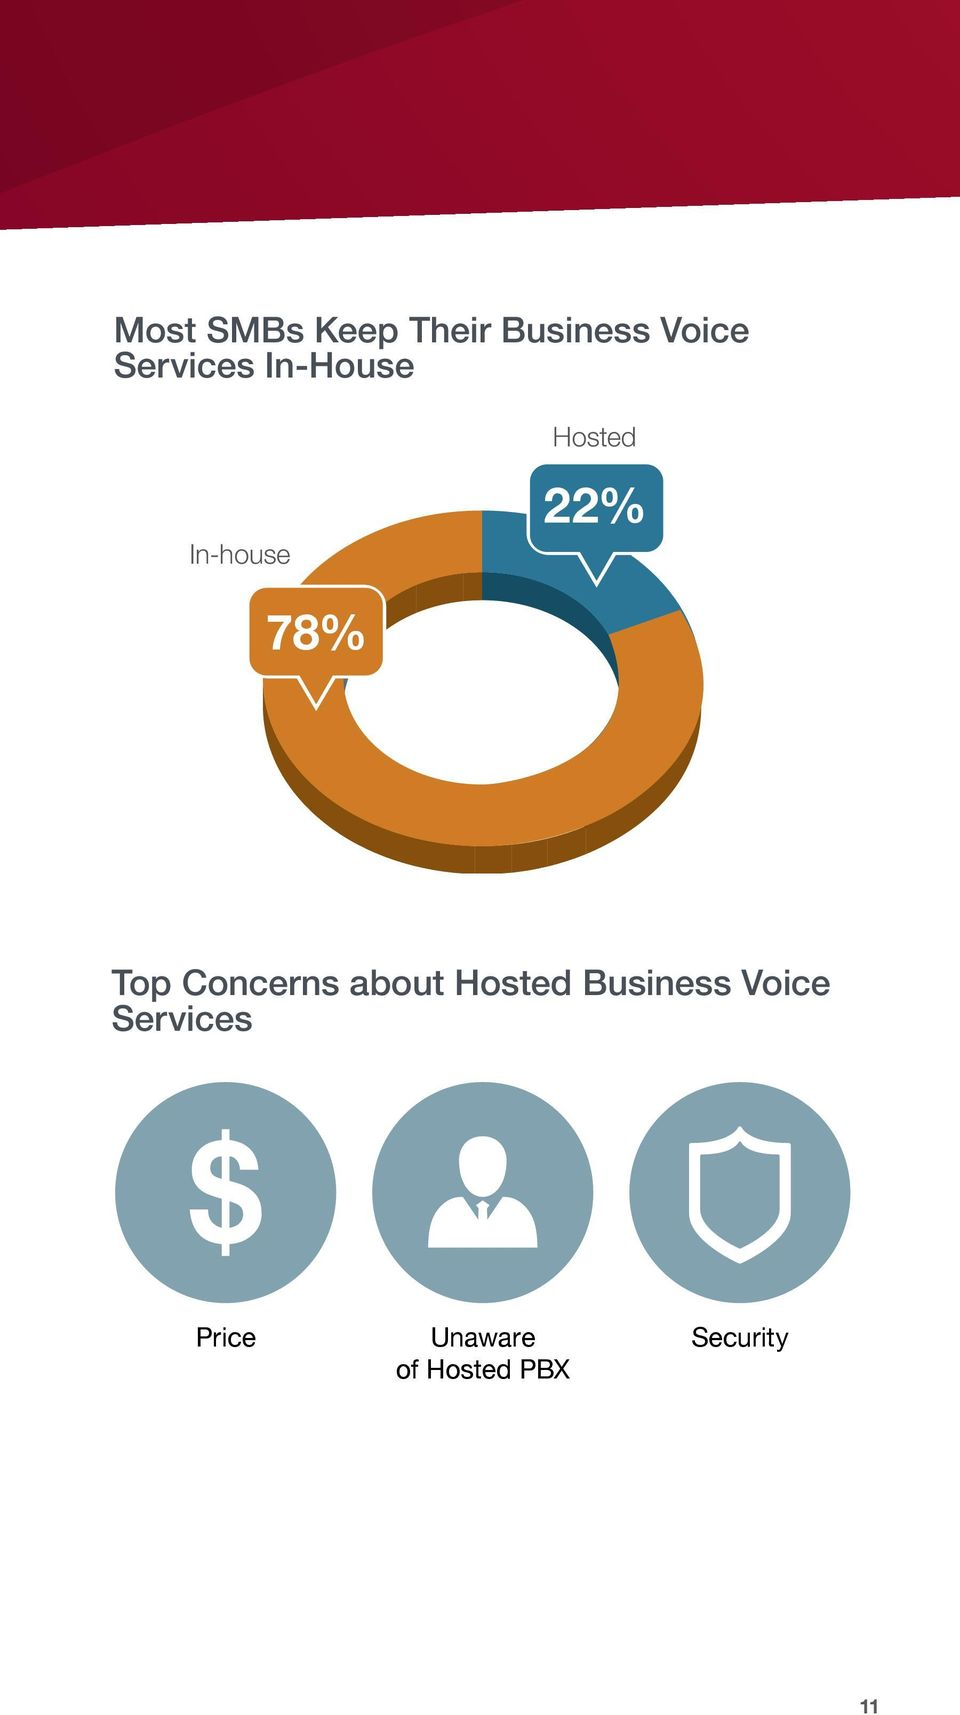 Top Concerns about Hosted Business Voice